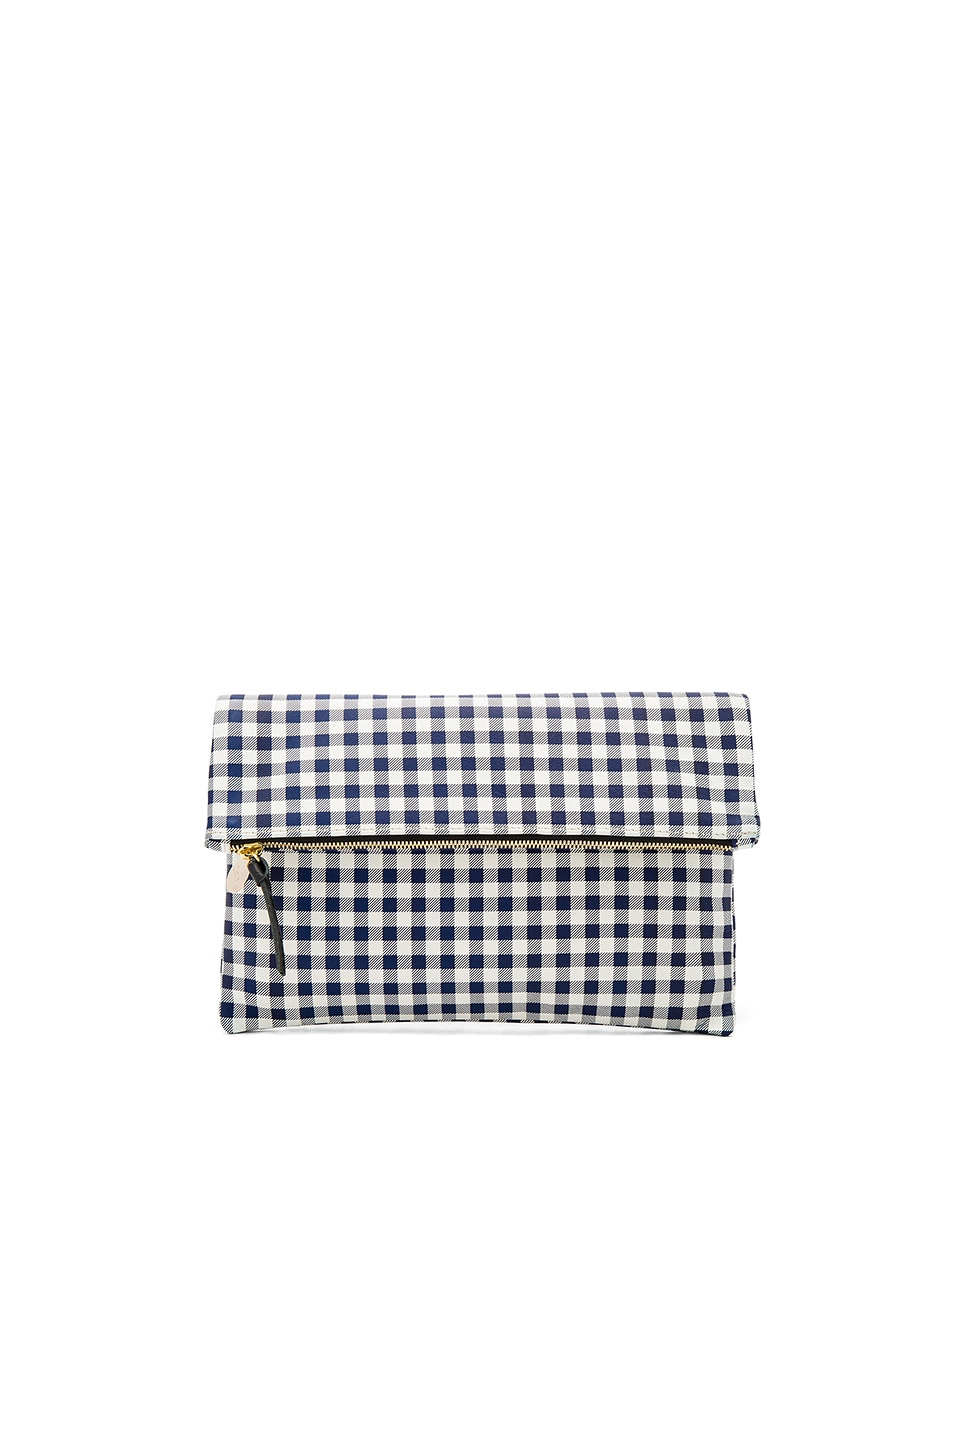 Clare V. Supreme Foldover Clutch in Navy Gingham